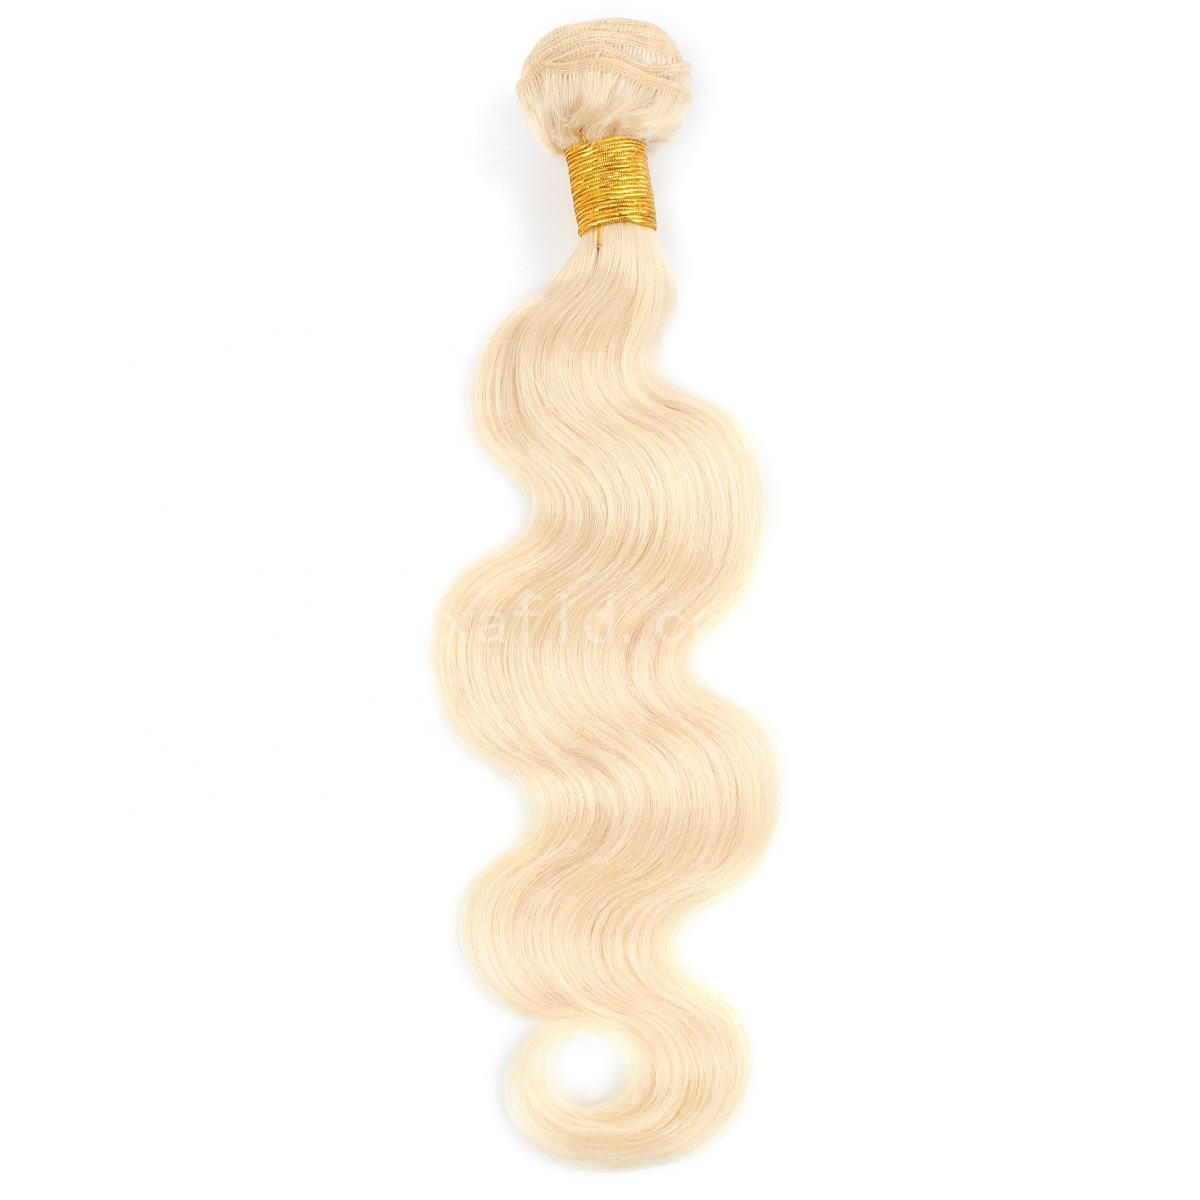 High Quality Body Wave 613# Blonde Hair Extensions,good texture different color hair weaves Cheap virgin remy hair